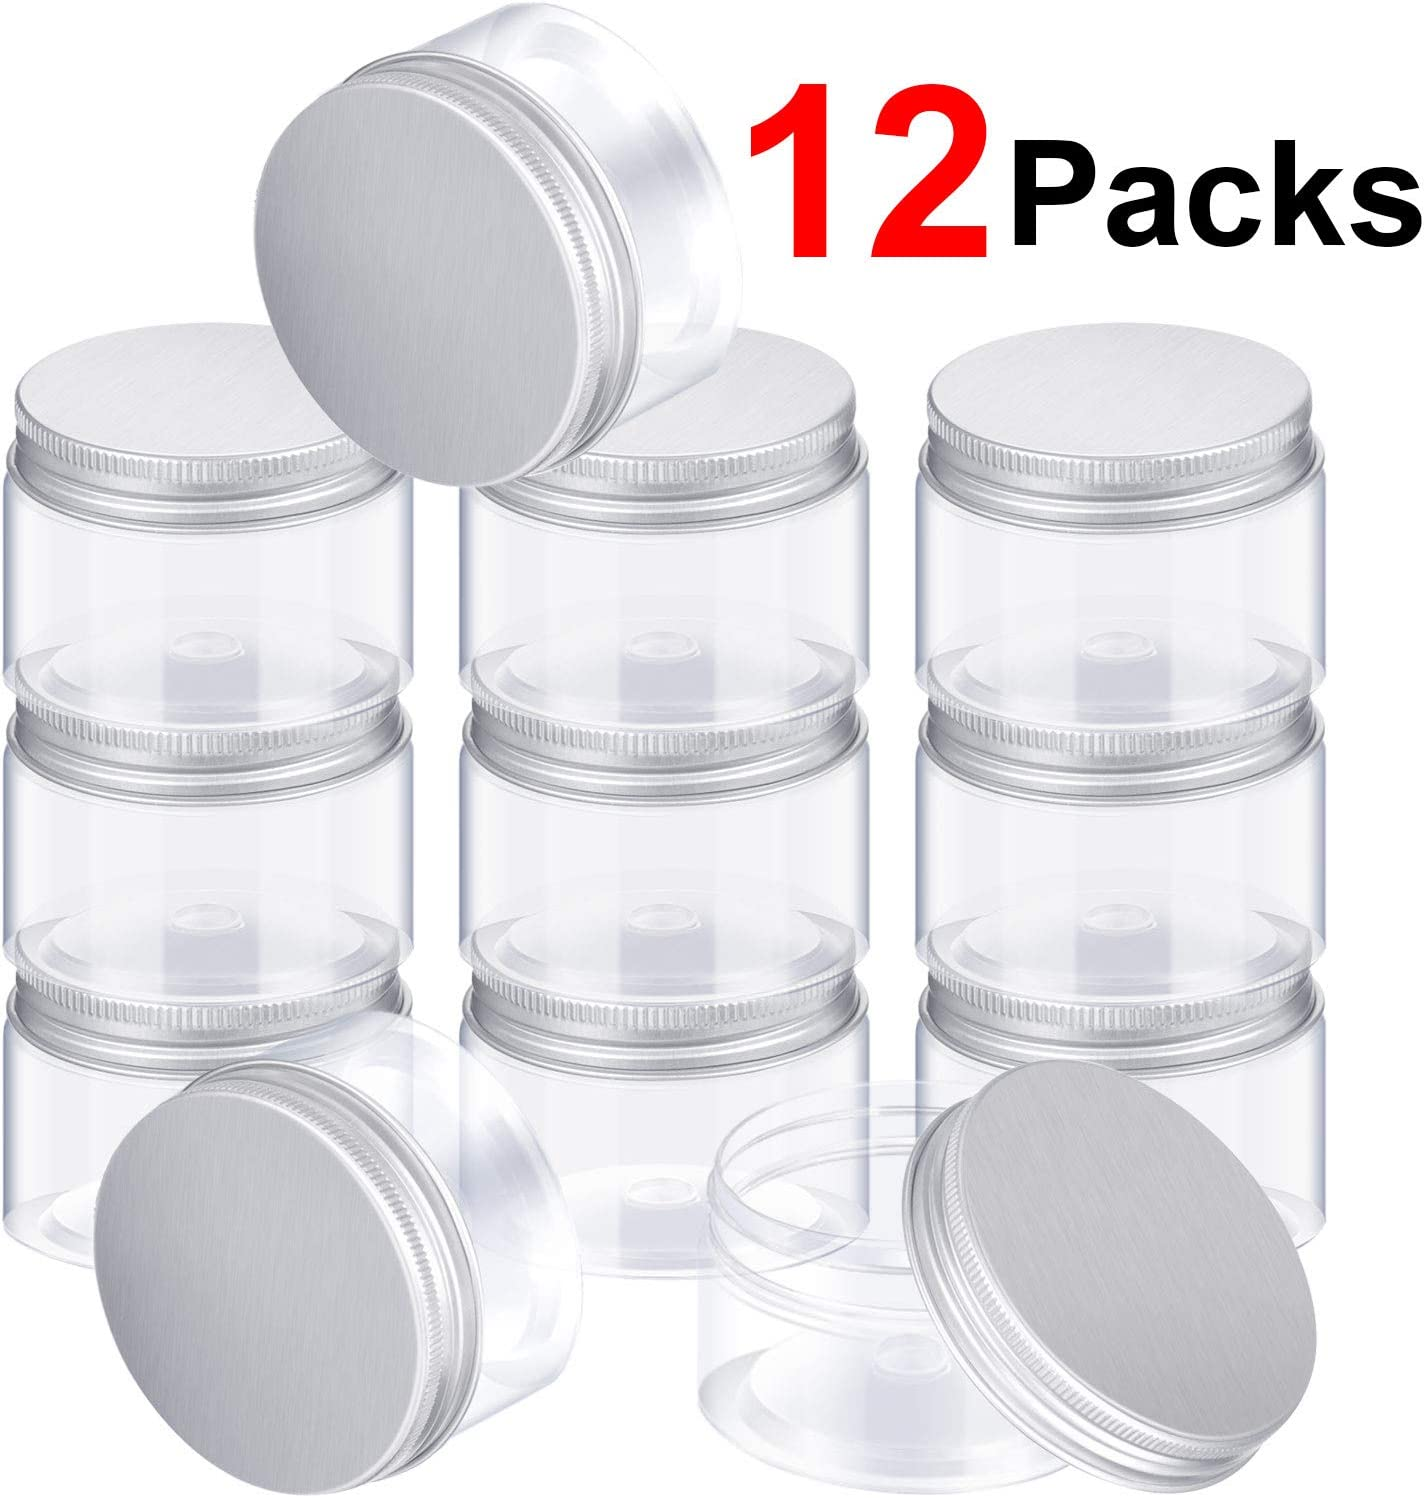 DIY Slime Making or Others SATINIOR Empty 12 Pack Clear Plastic Slime Storage Favor Jars Wide-Mouth Plastic Containers with Lids for Beauty Products 2 Ounce